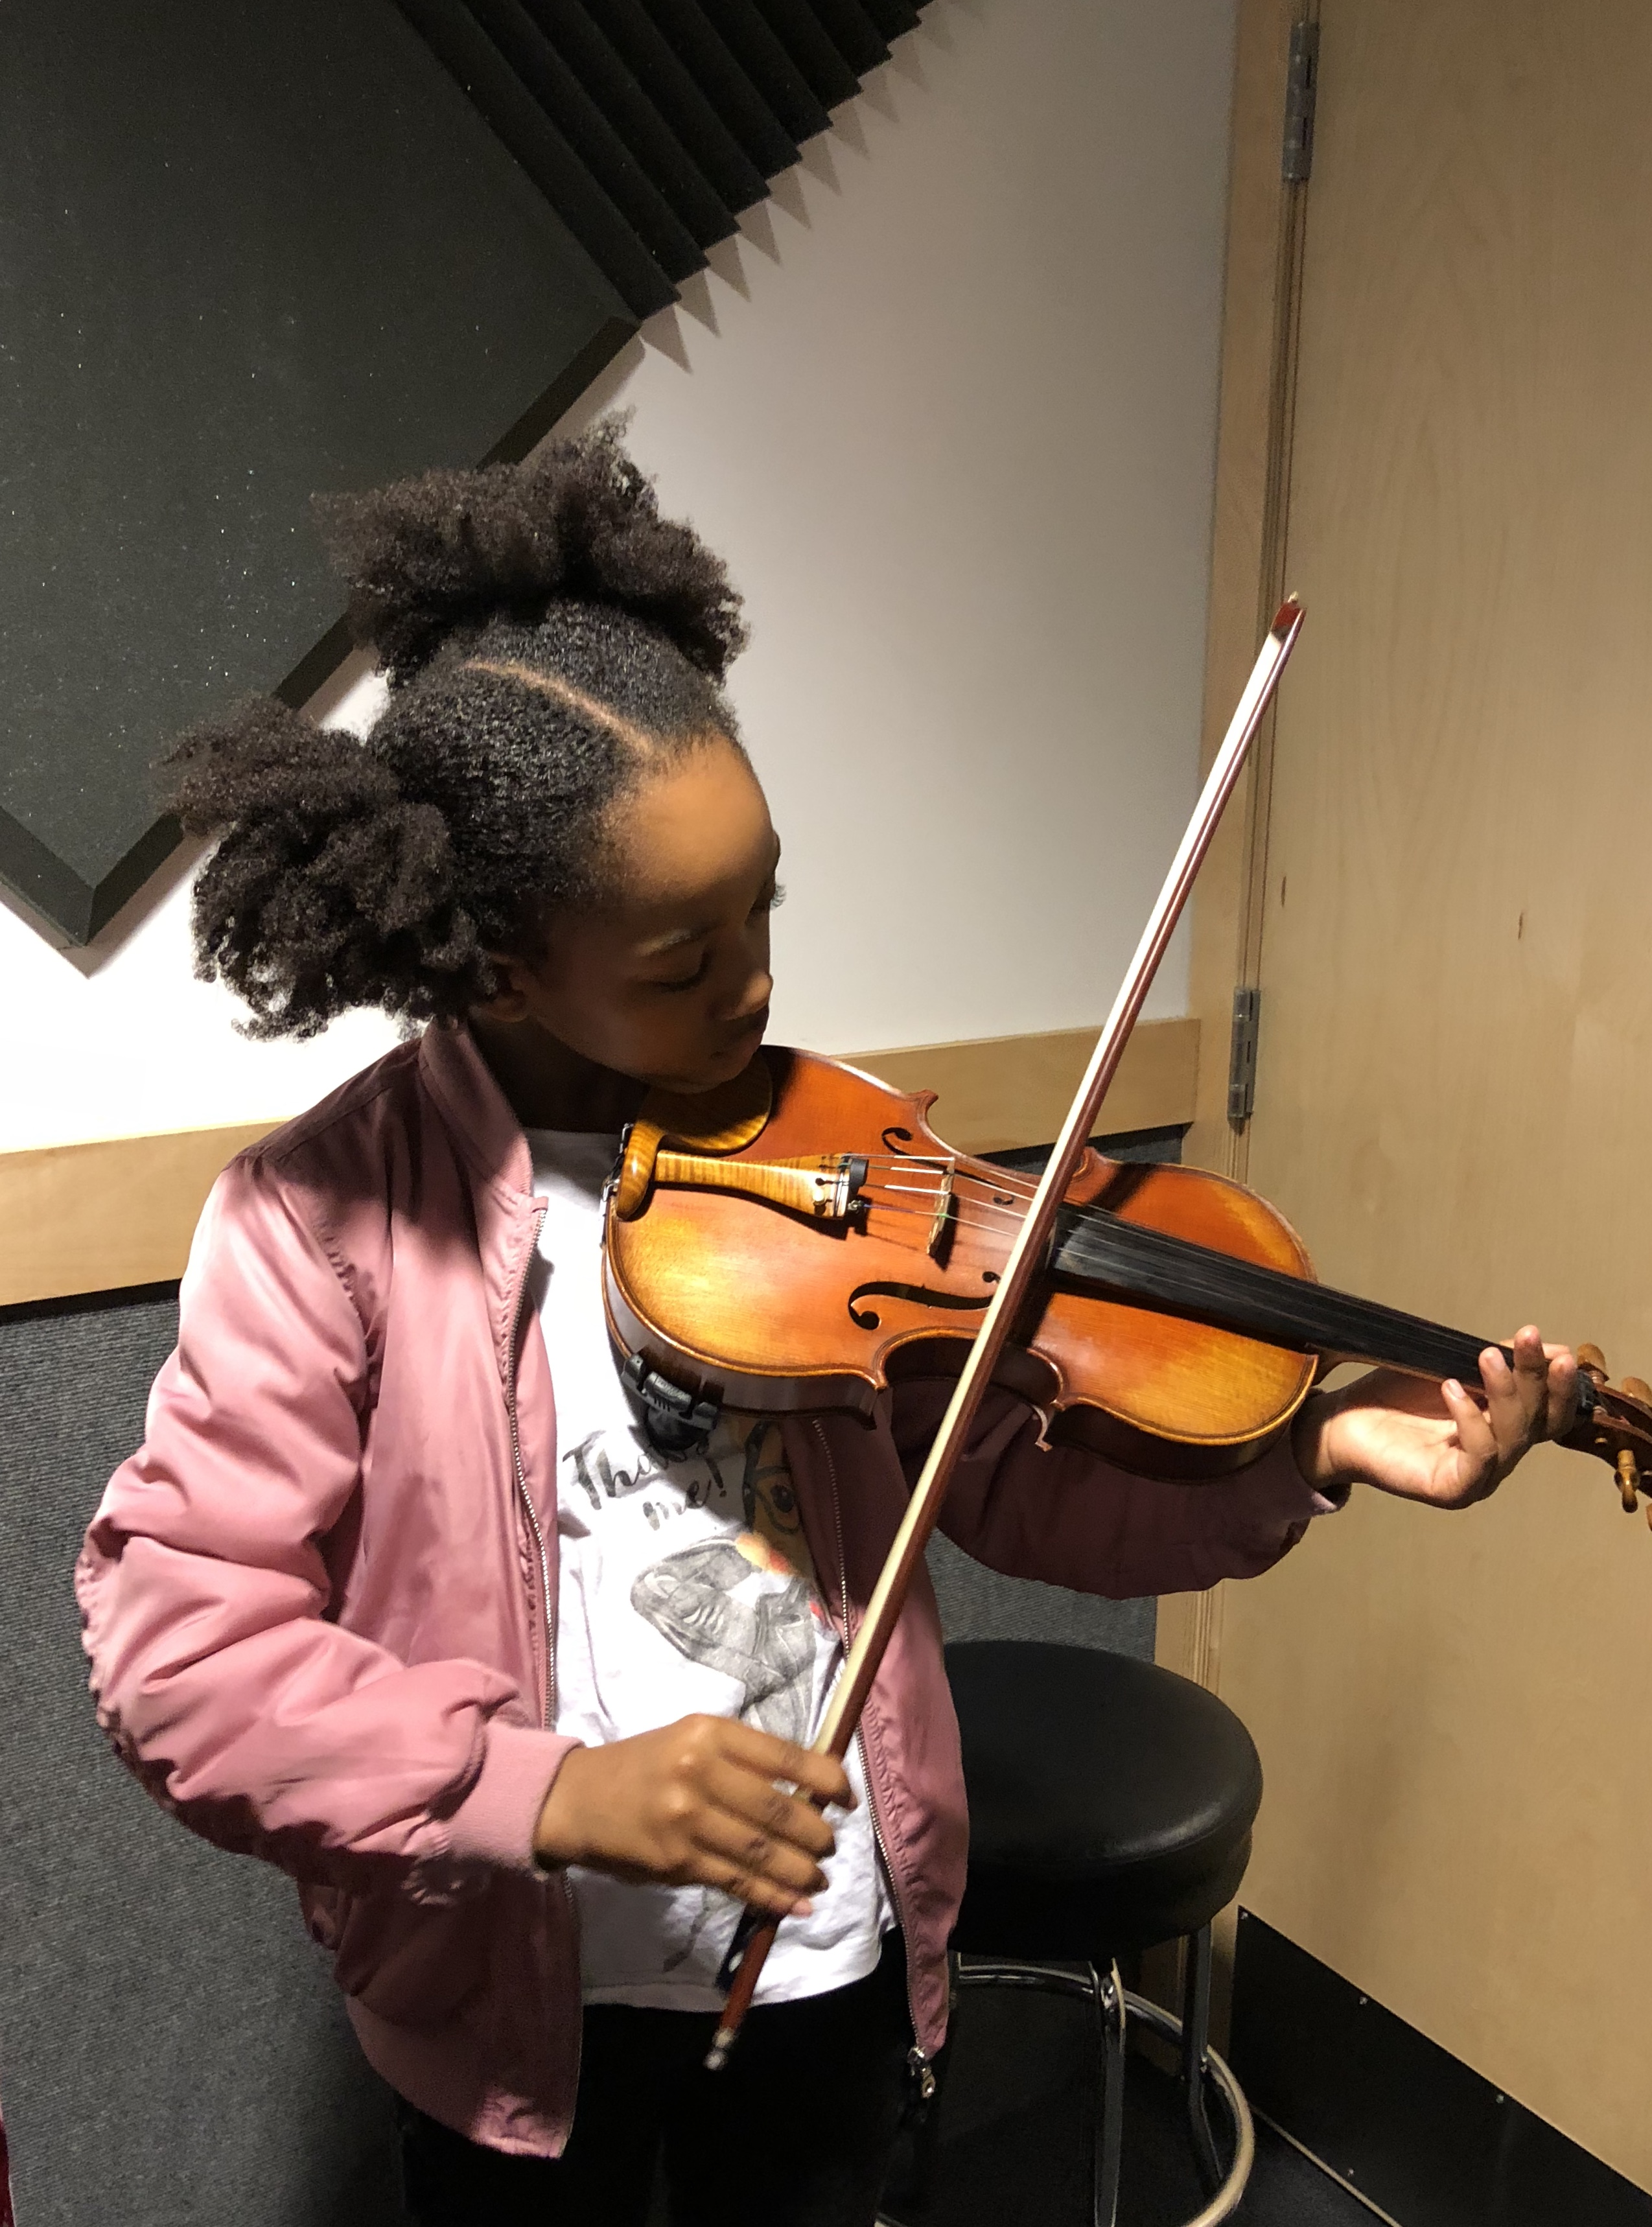 Violin Lessons at Guitar Center